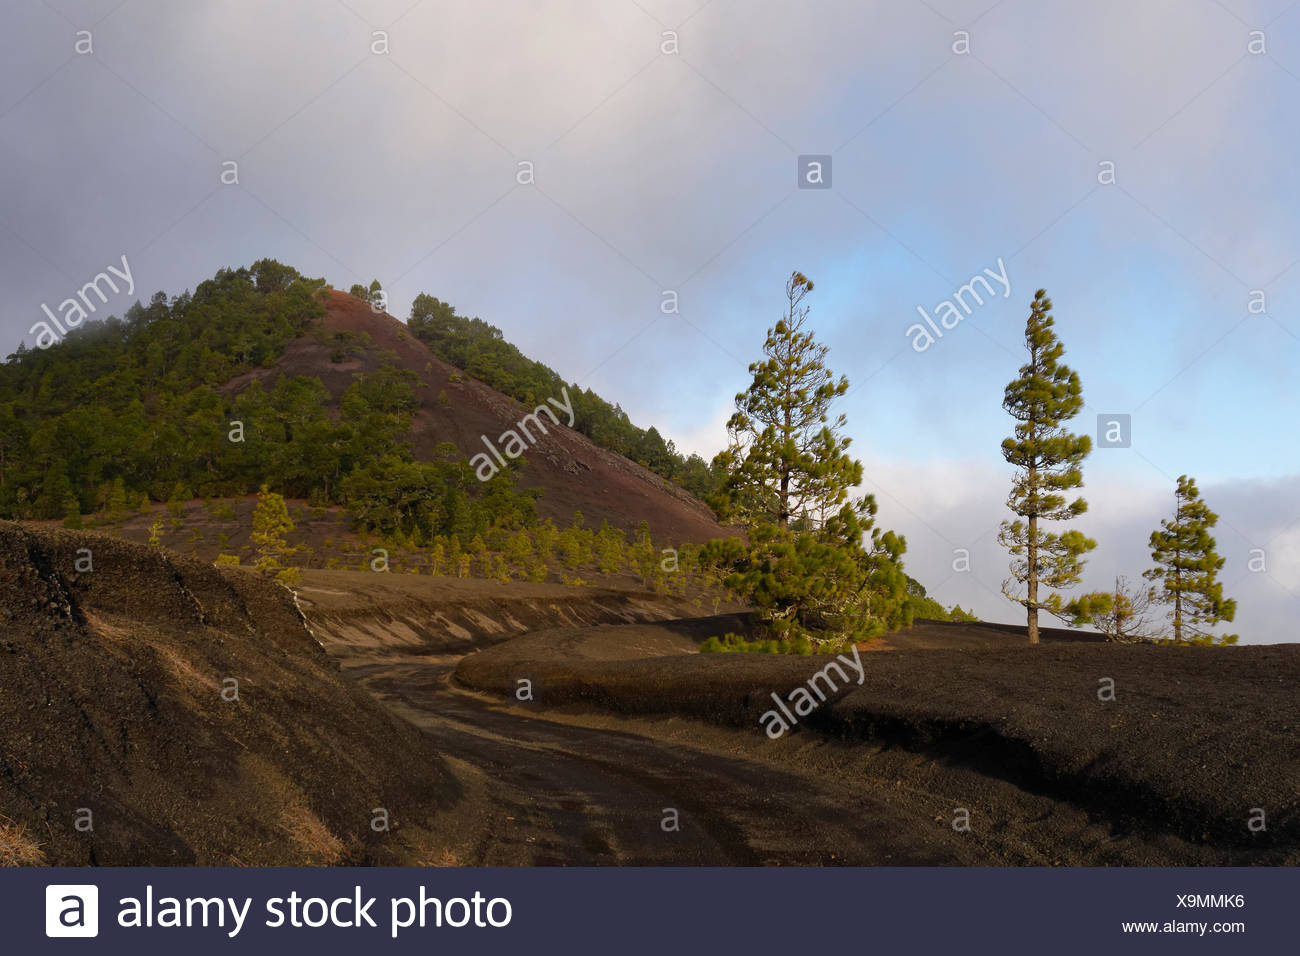 Montaña Quemada, dirt road in Llano de Jable at El Paso, La Palma, Canary Islands, Spain - Stock Image